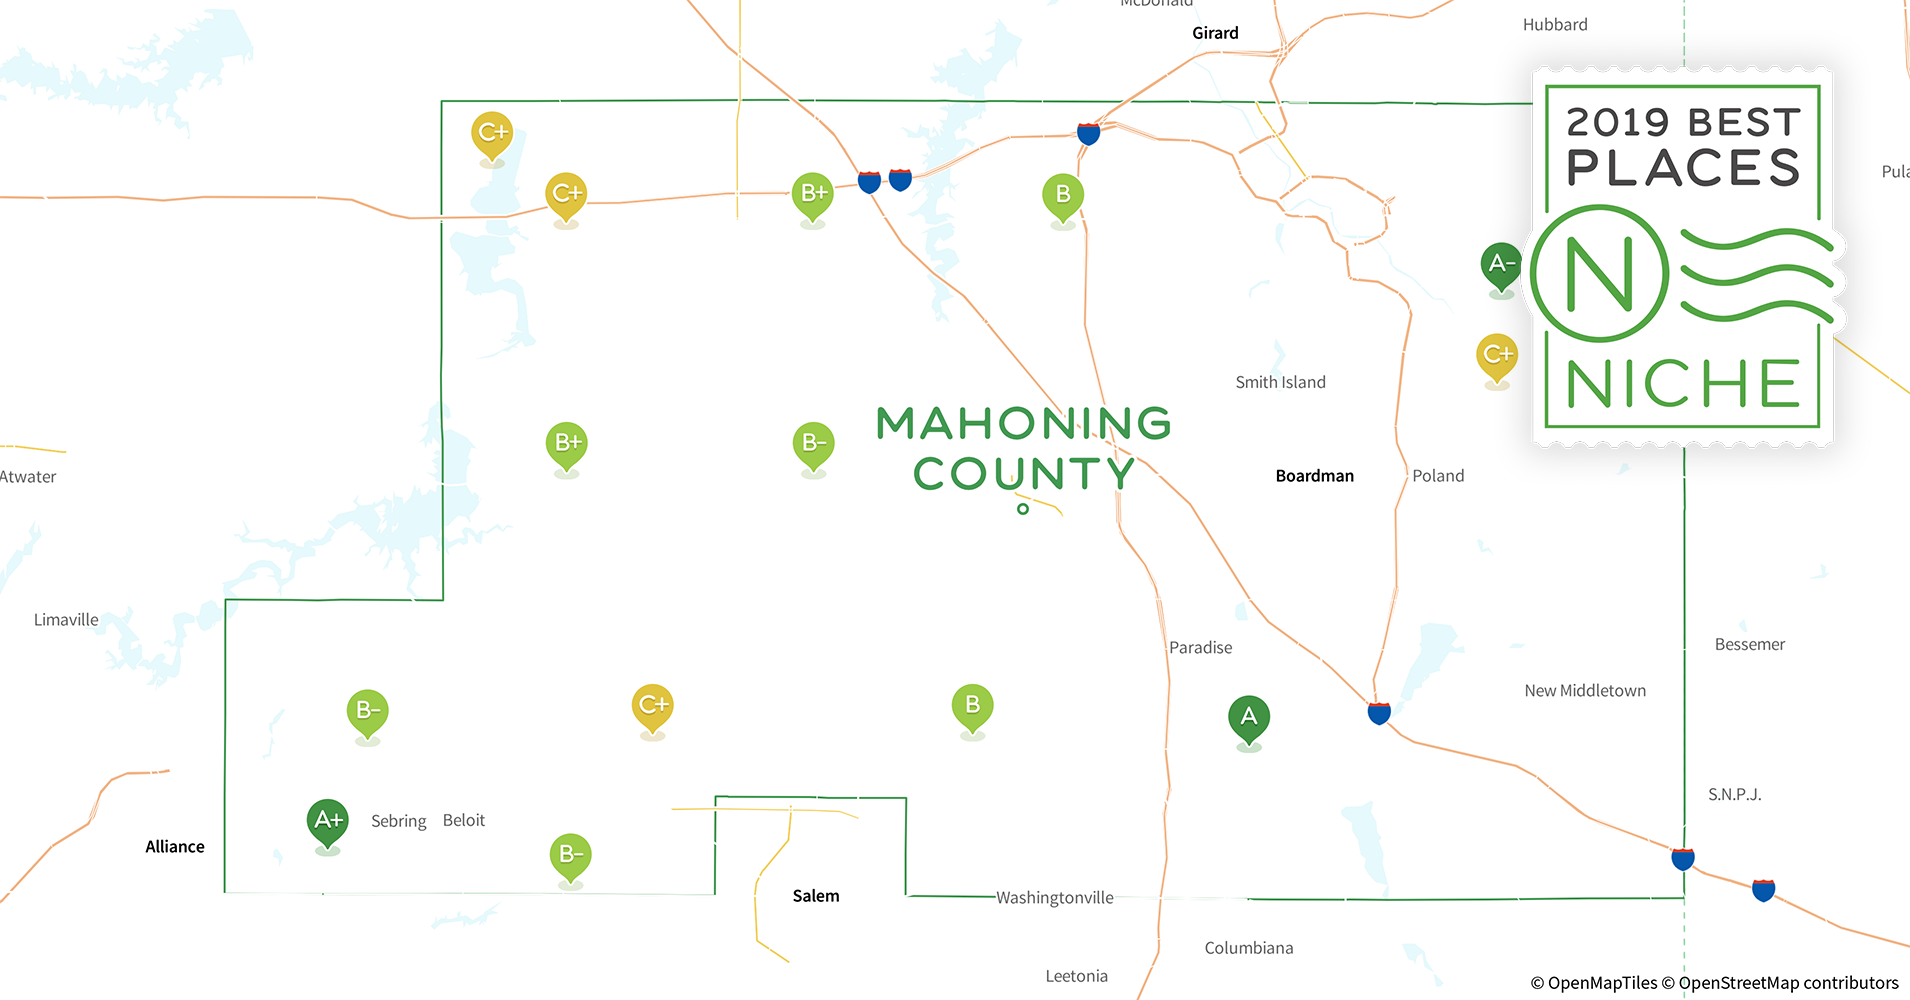 2019 Best Places to Live in Mahoning County, OH - Niche